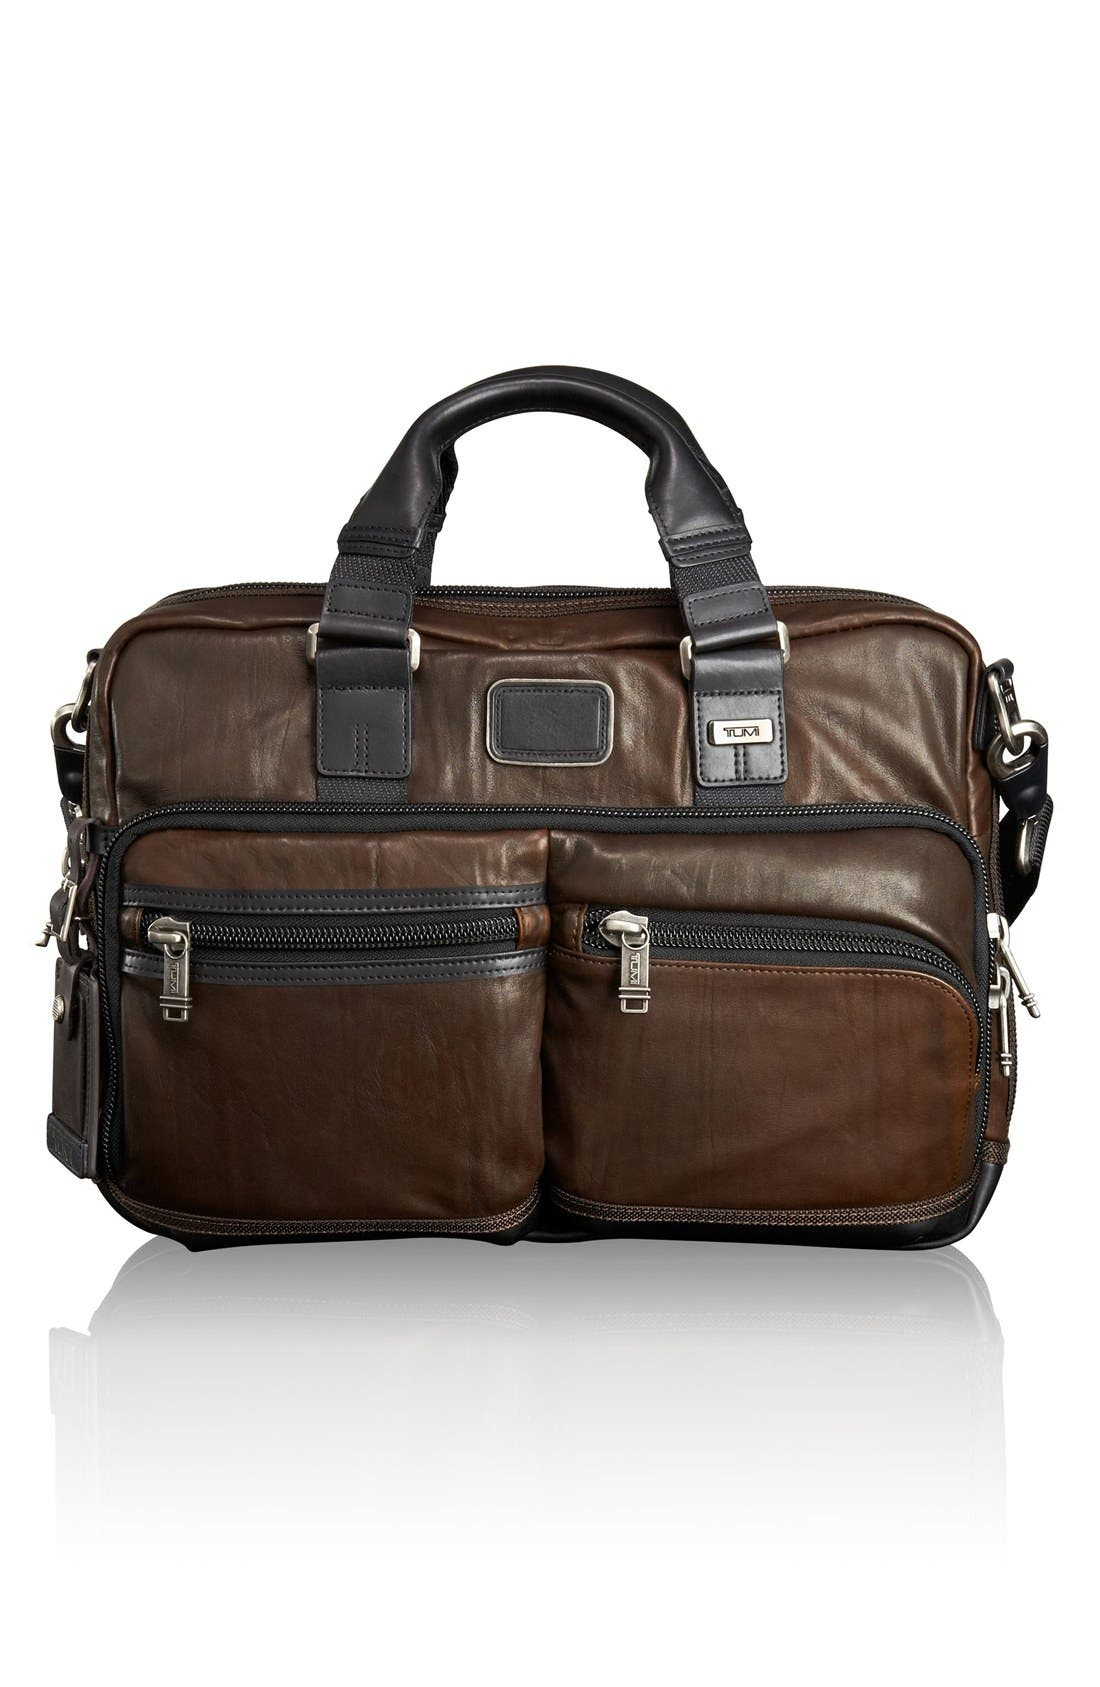 TUMI Bravo Leather Commuter Briefcase